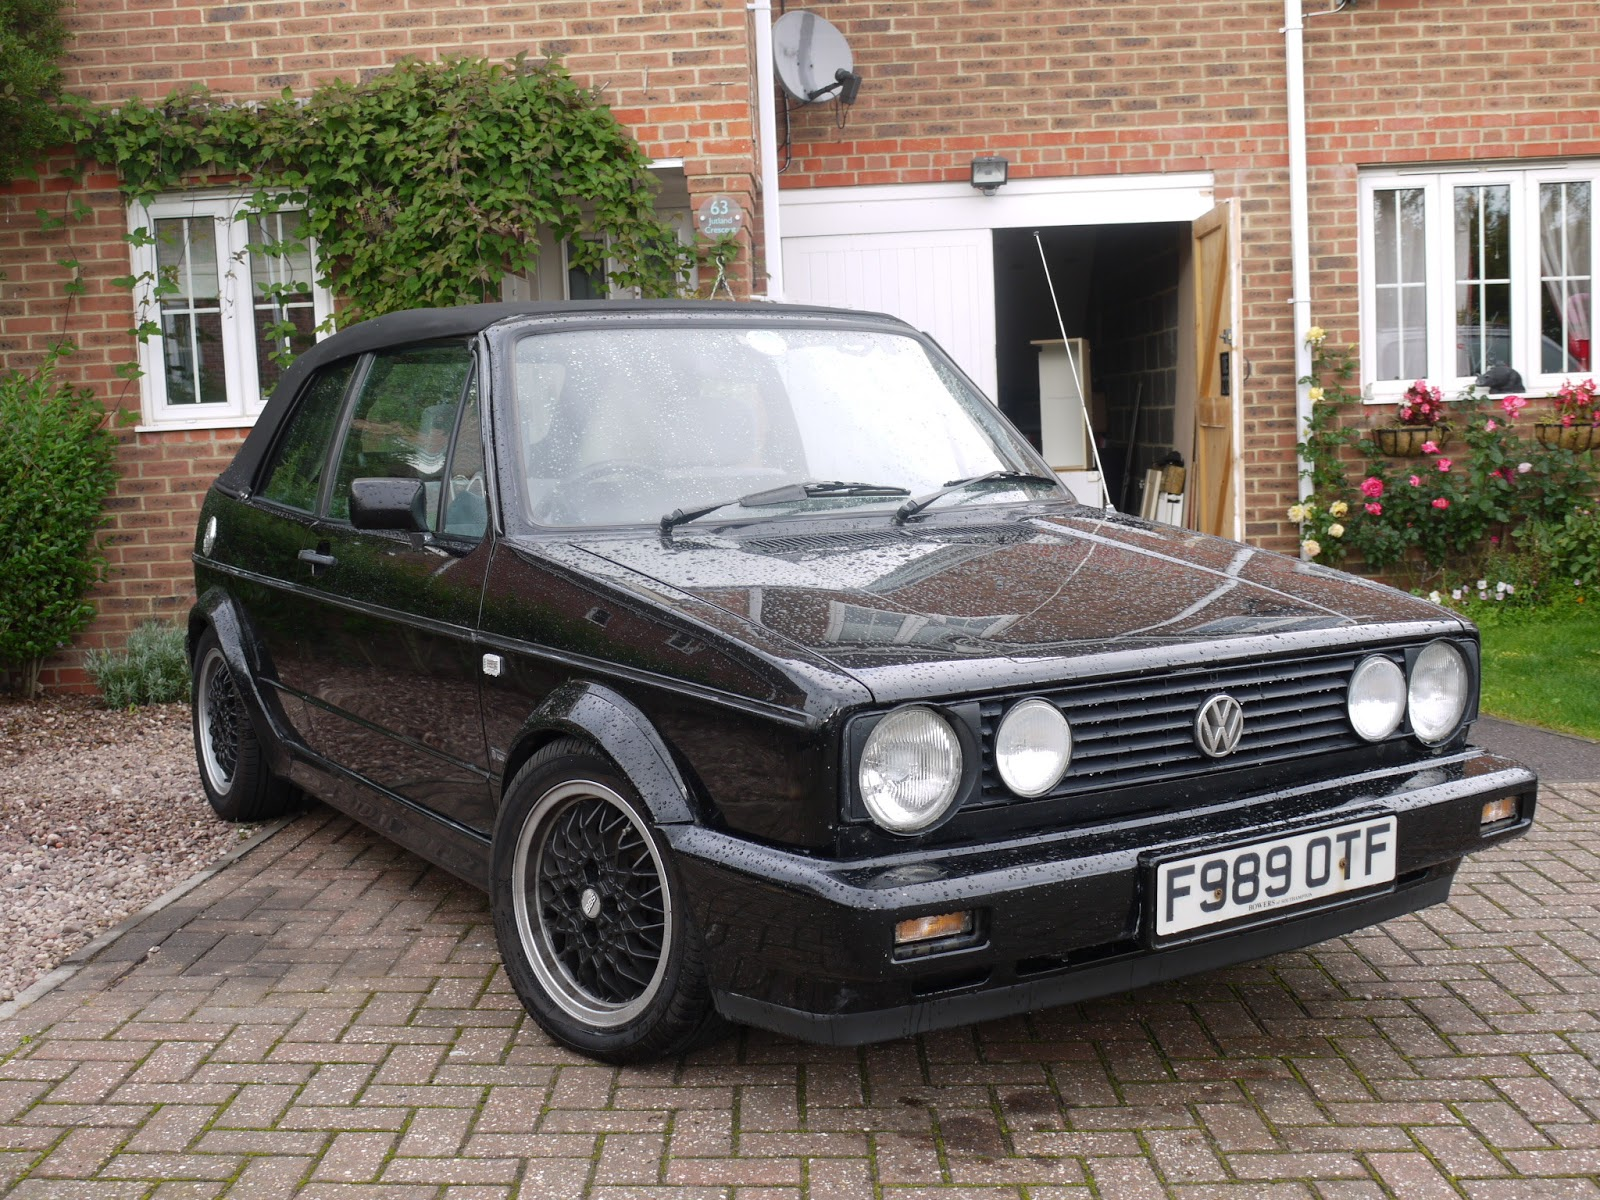 affectionado 1988 mk1 golf gti cabriolet. Black Bedroom Furniture Sets. Home Design Ideas